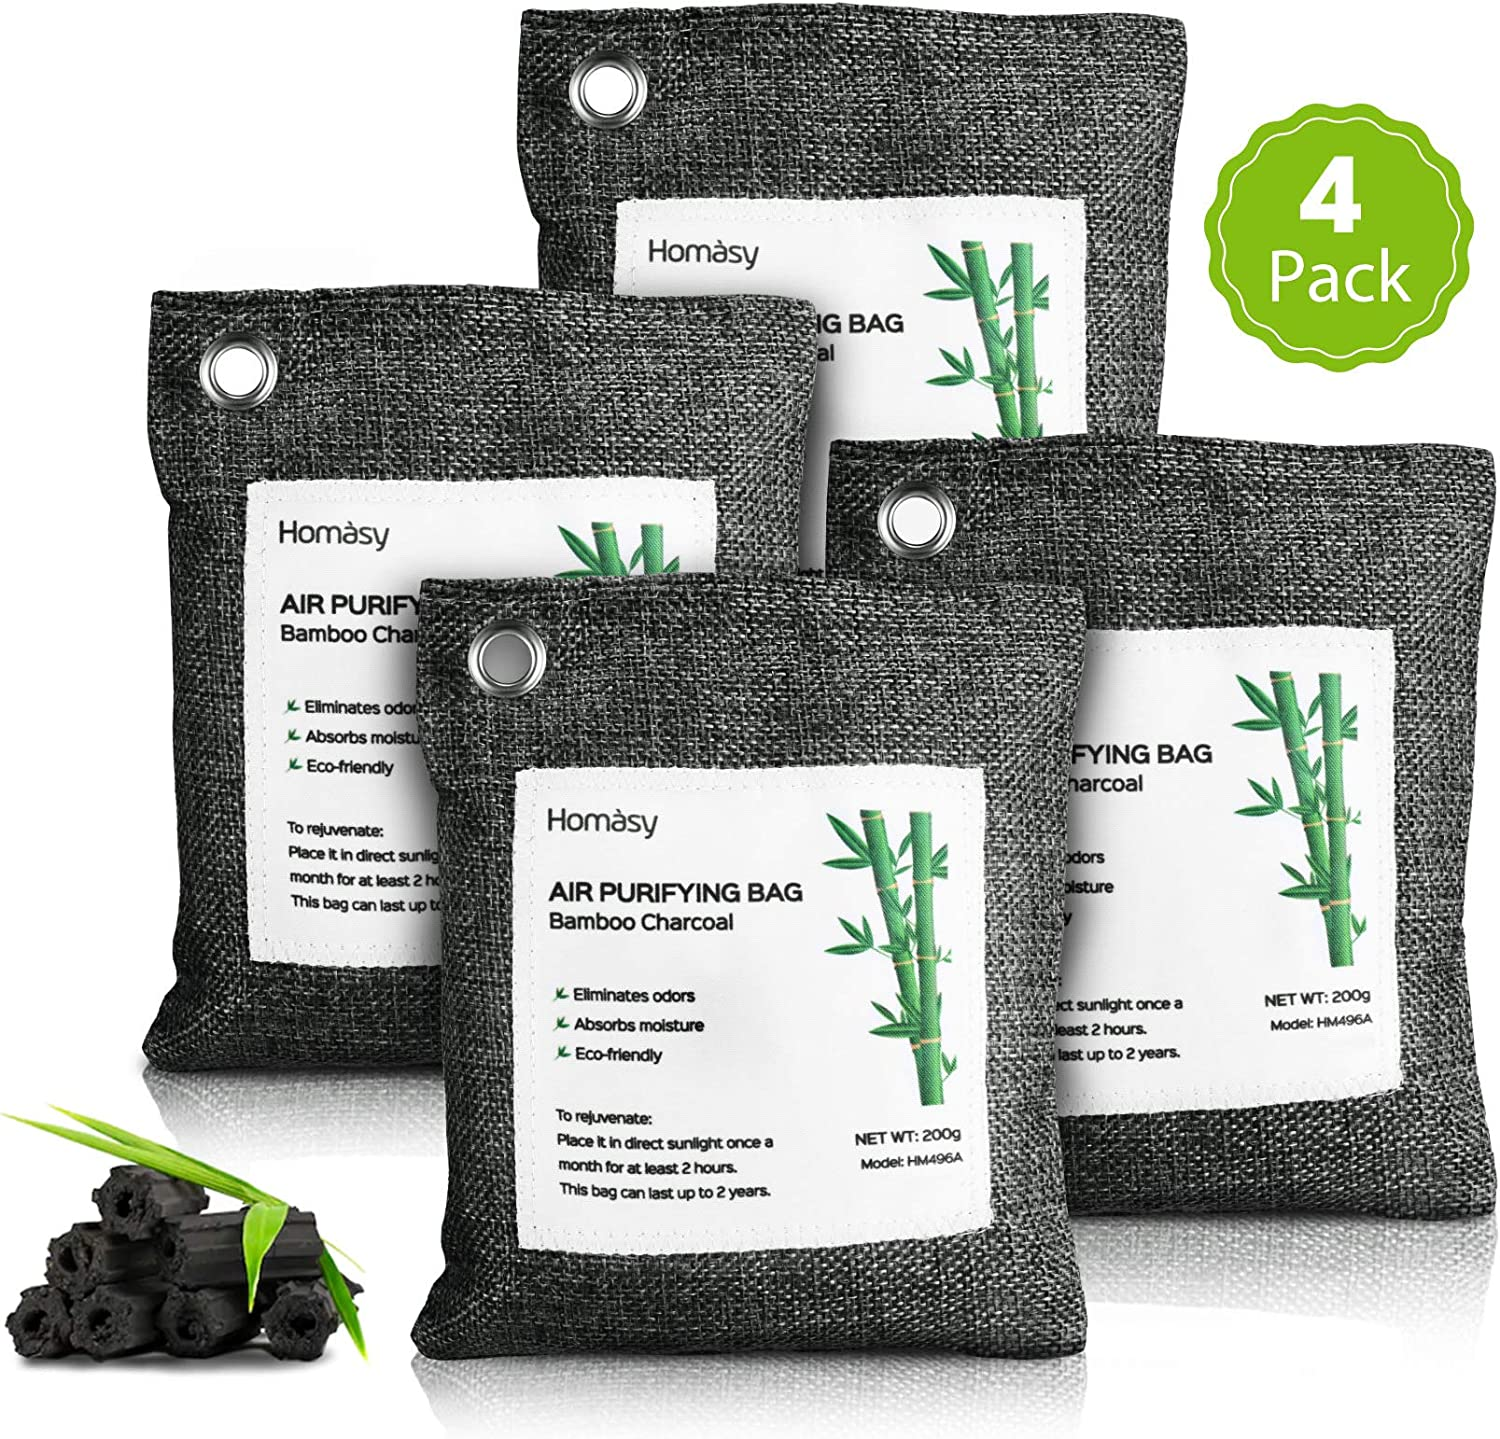 Homasy Bamboo Charcoal Purifying Bag with Activated Charcoal (4 x 200g with 4 Hooks) Removes Odors and Moisture, Natural Odor Absorber for Home, Pets, Car (Gray)